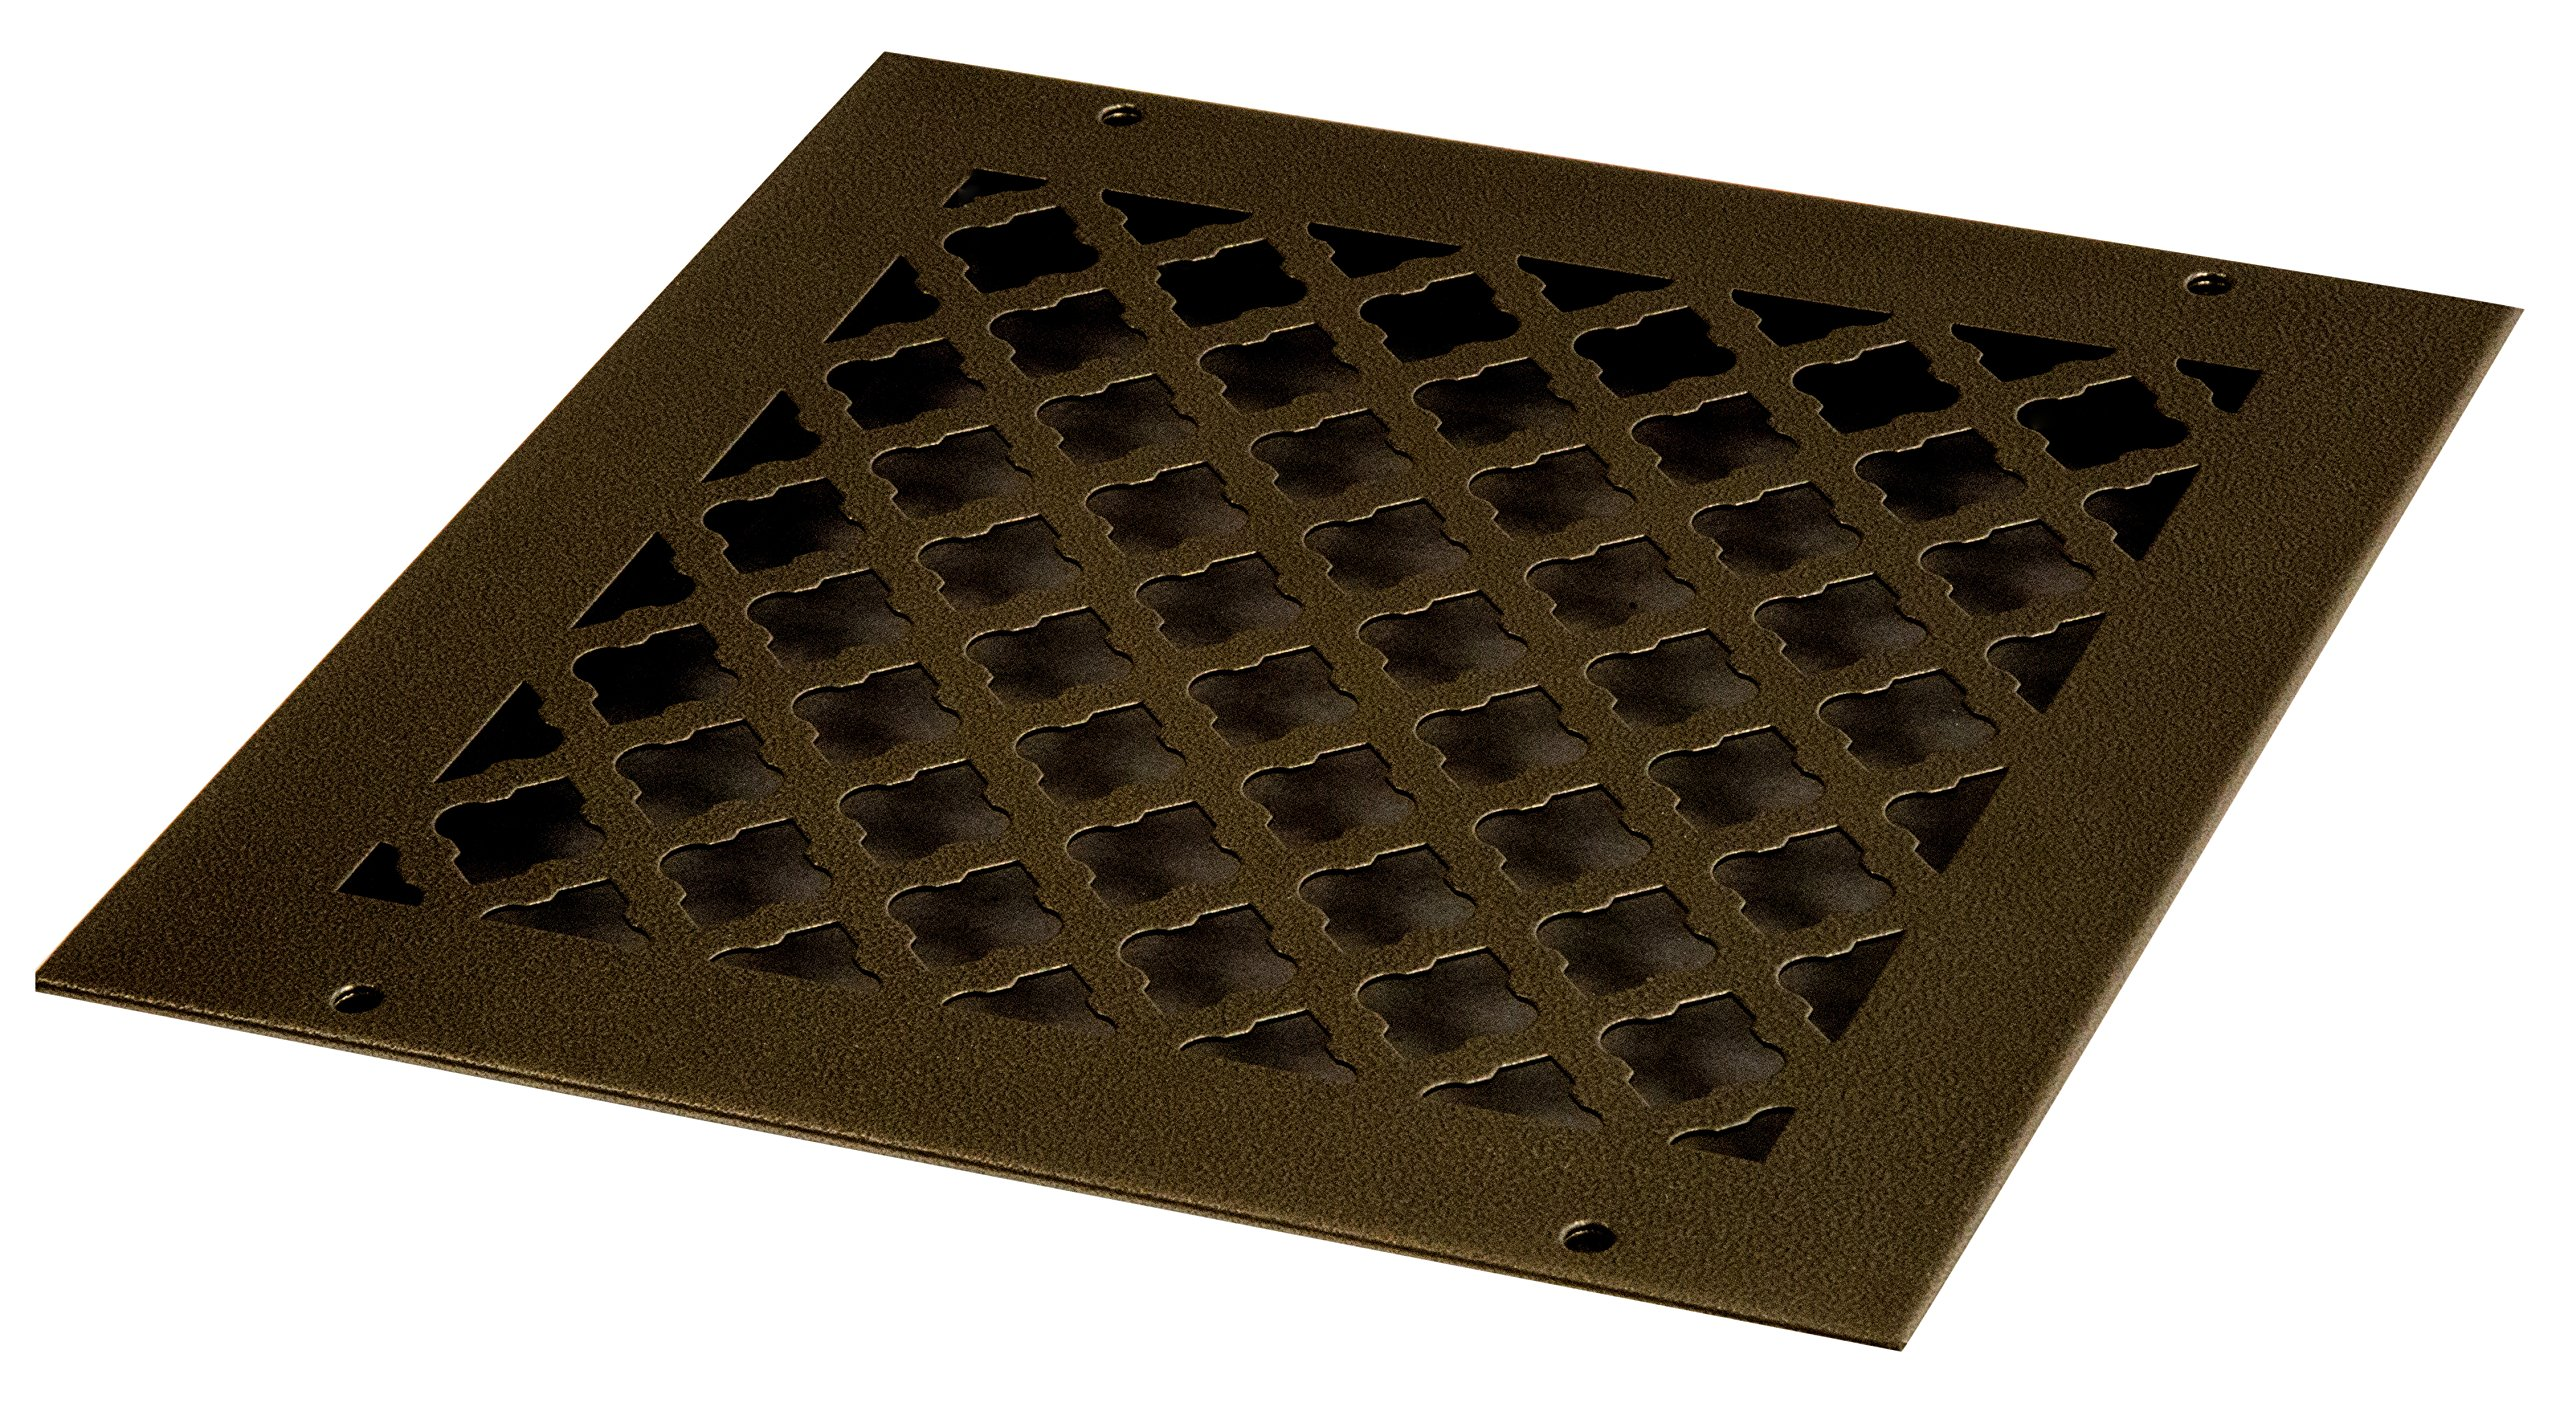 SteelCrest BTU10X10RORBH Bronze Series Designer Wall/Ceiling Vent Cover, with Mounting Screws, Oil Rubbed Bronze